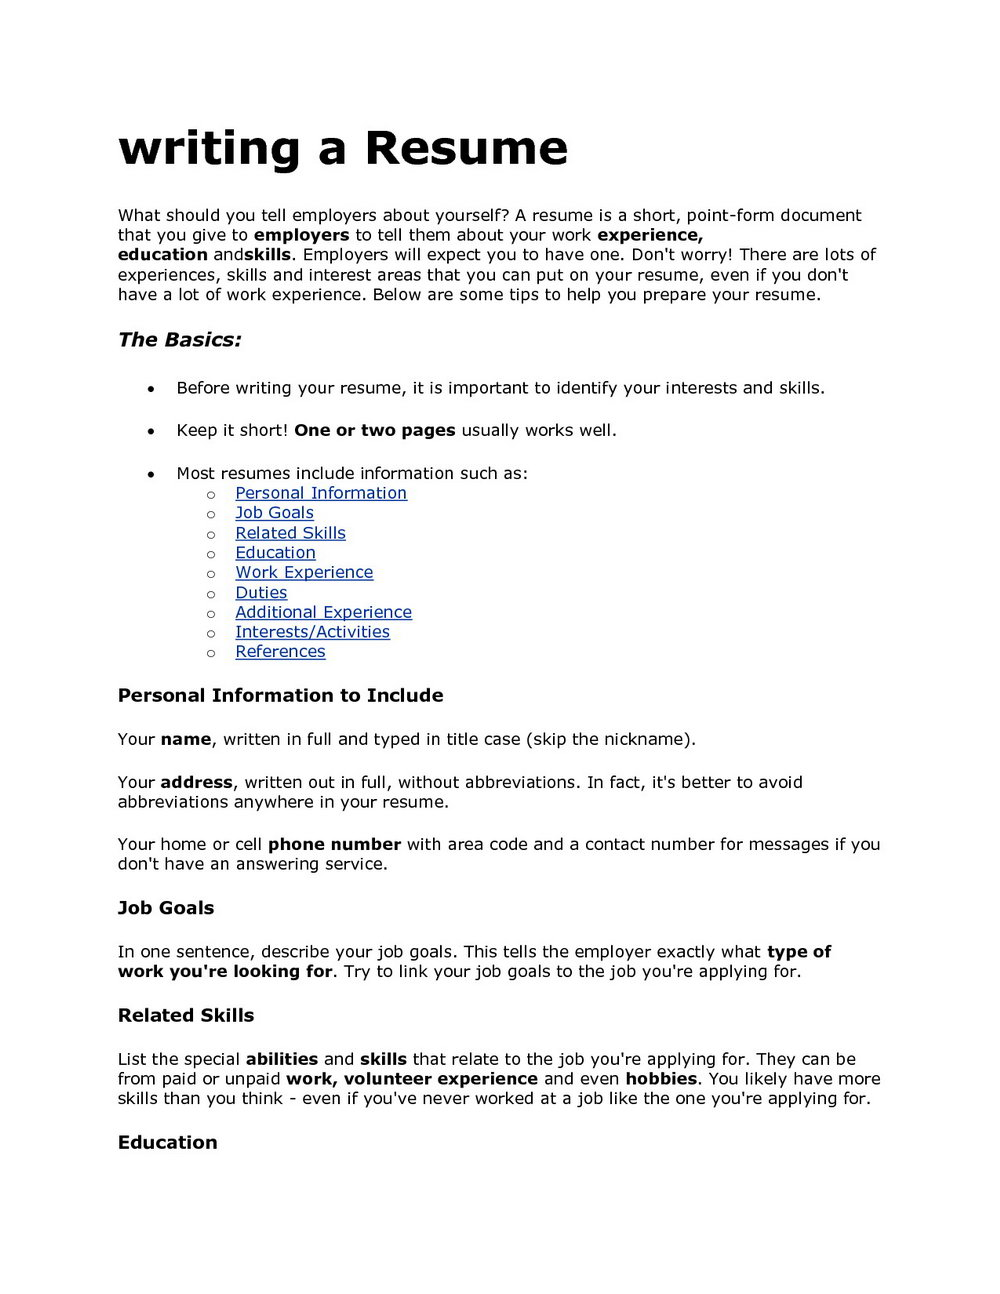 Monster Resume Writing Services Reviews